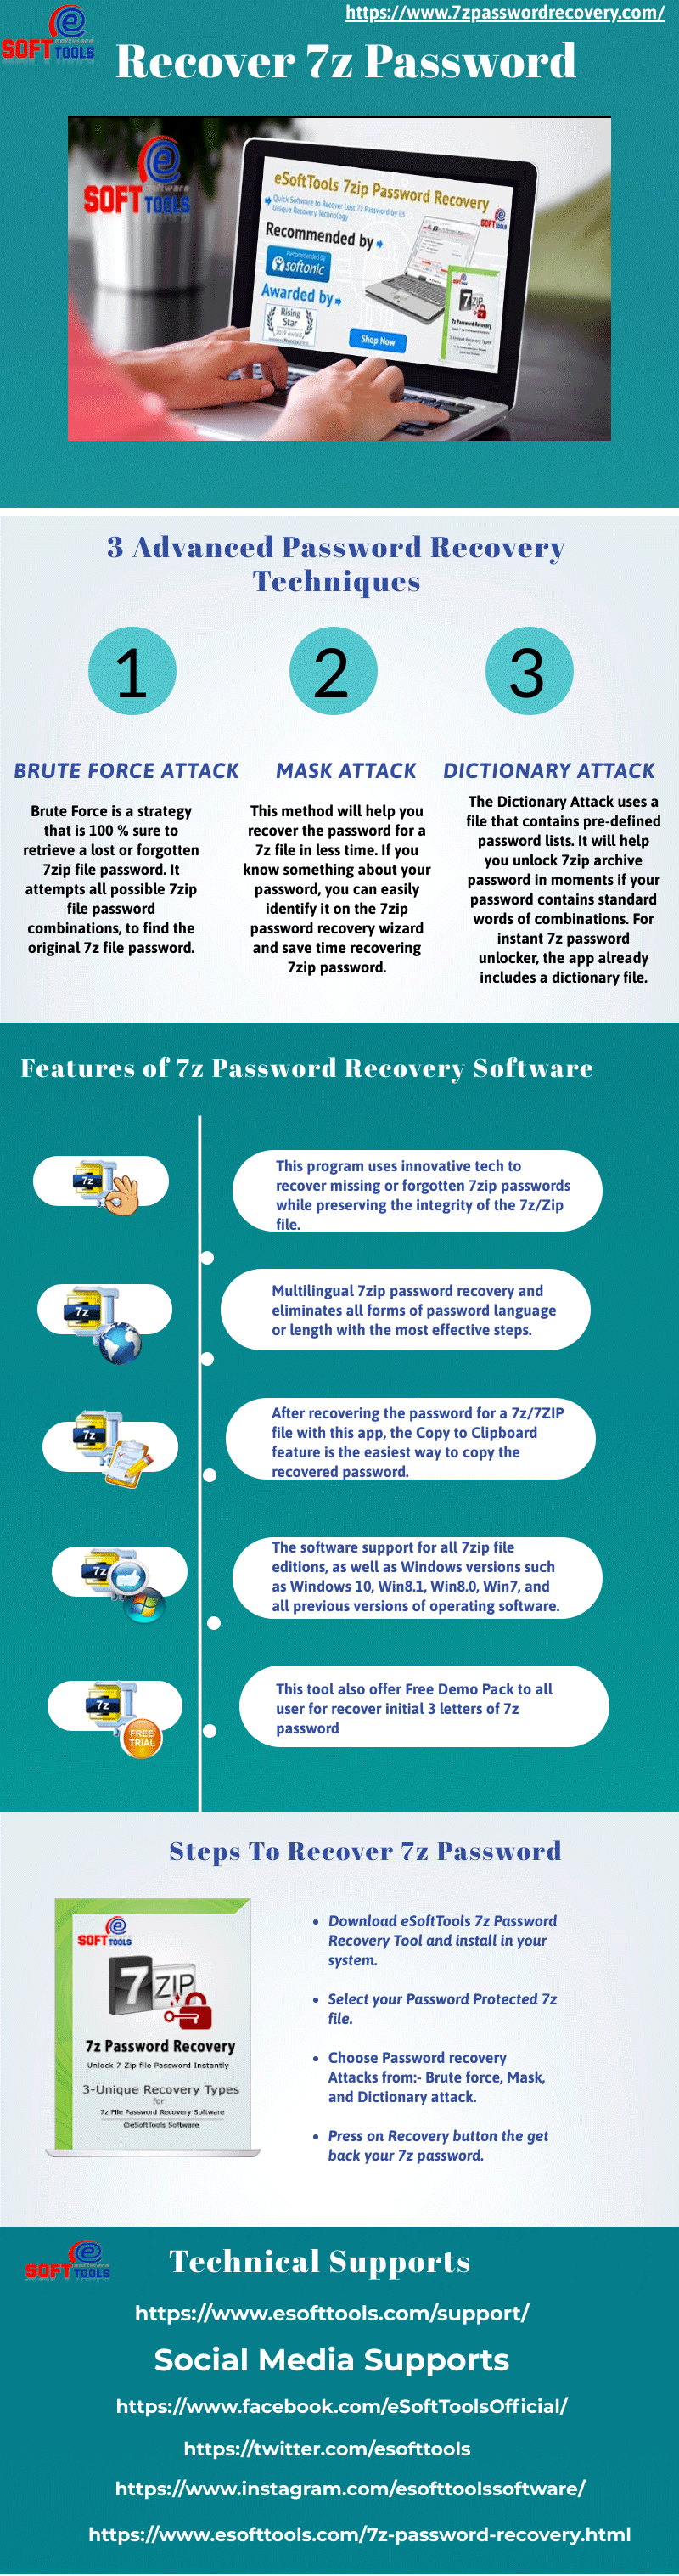 How to open a password-protected 7zip file?